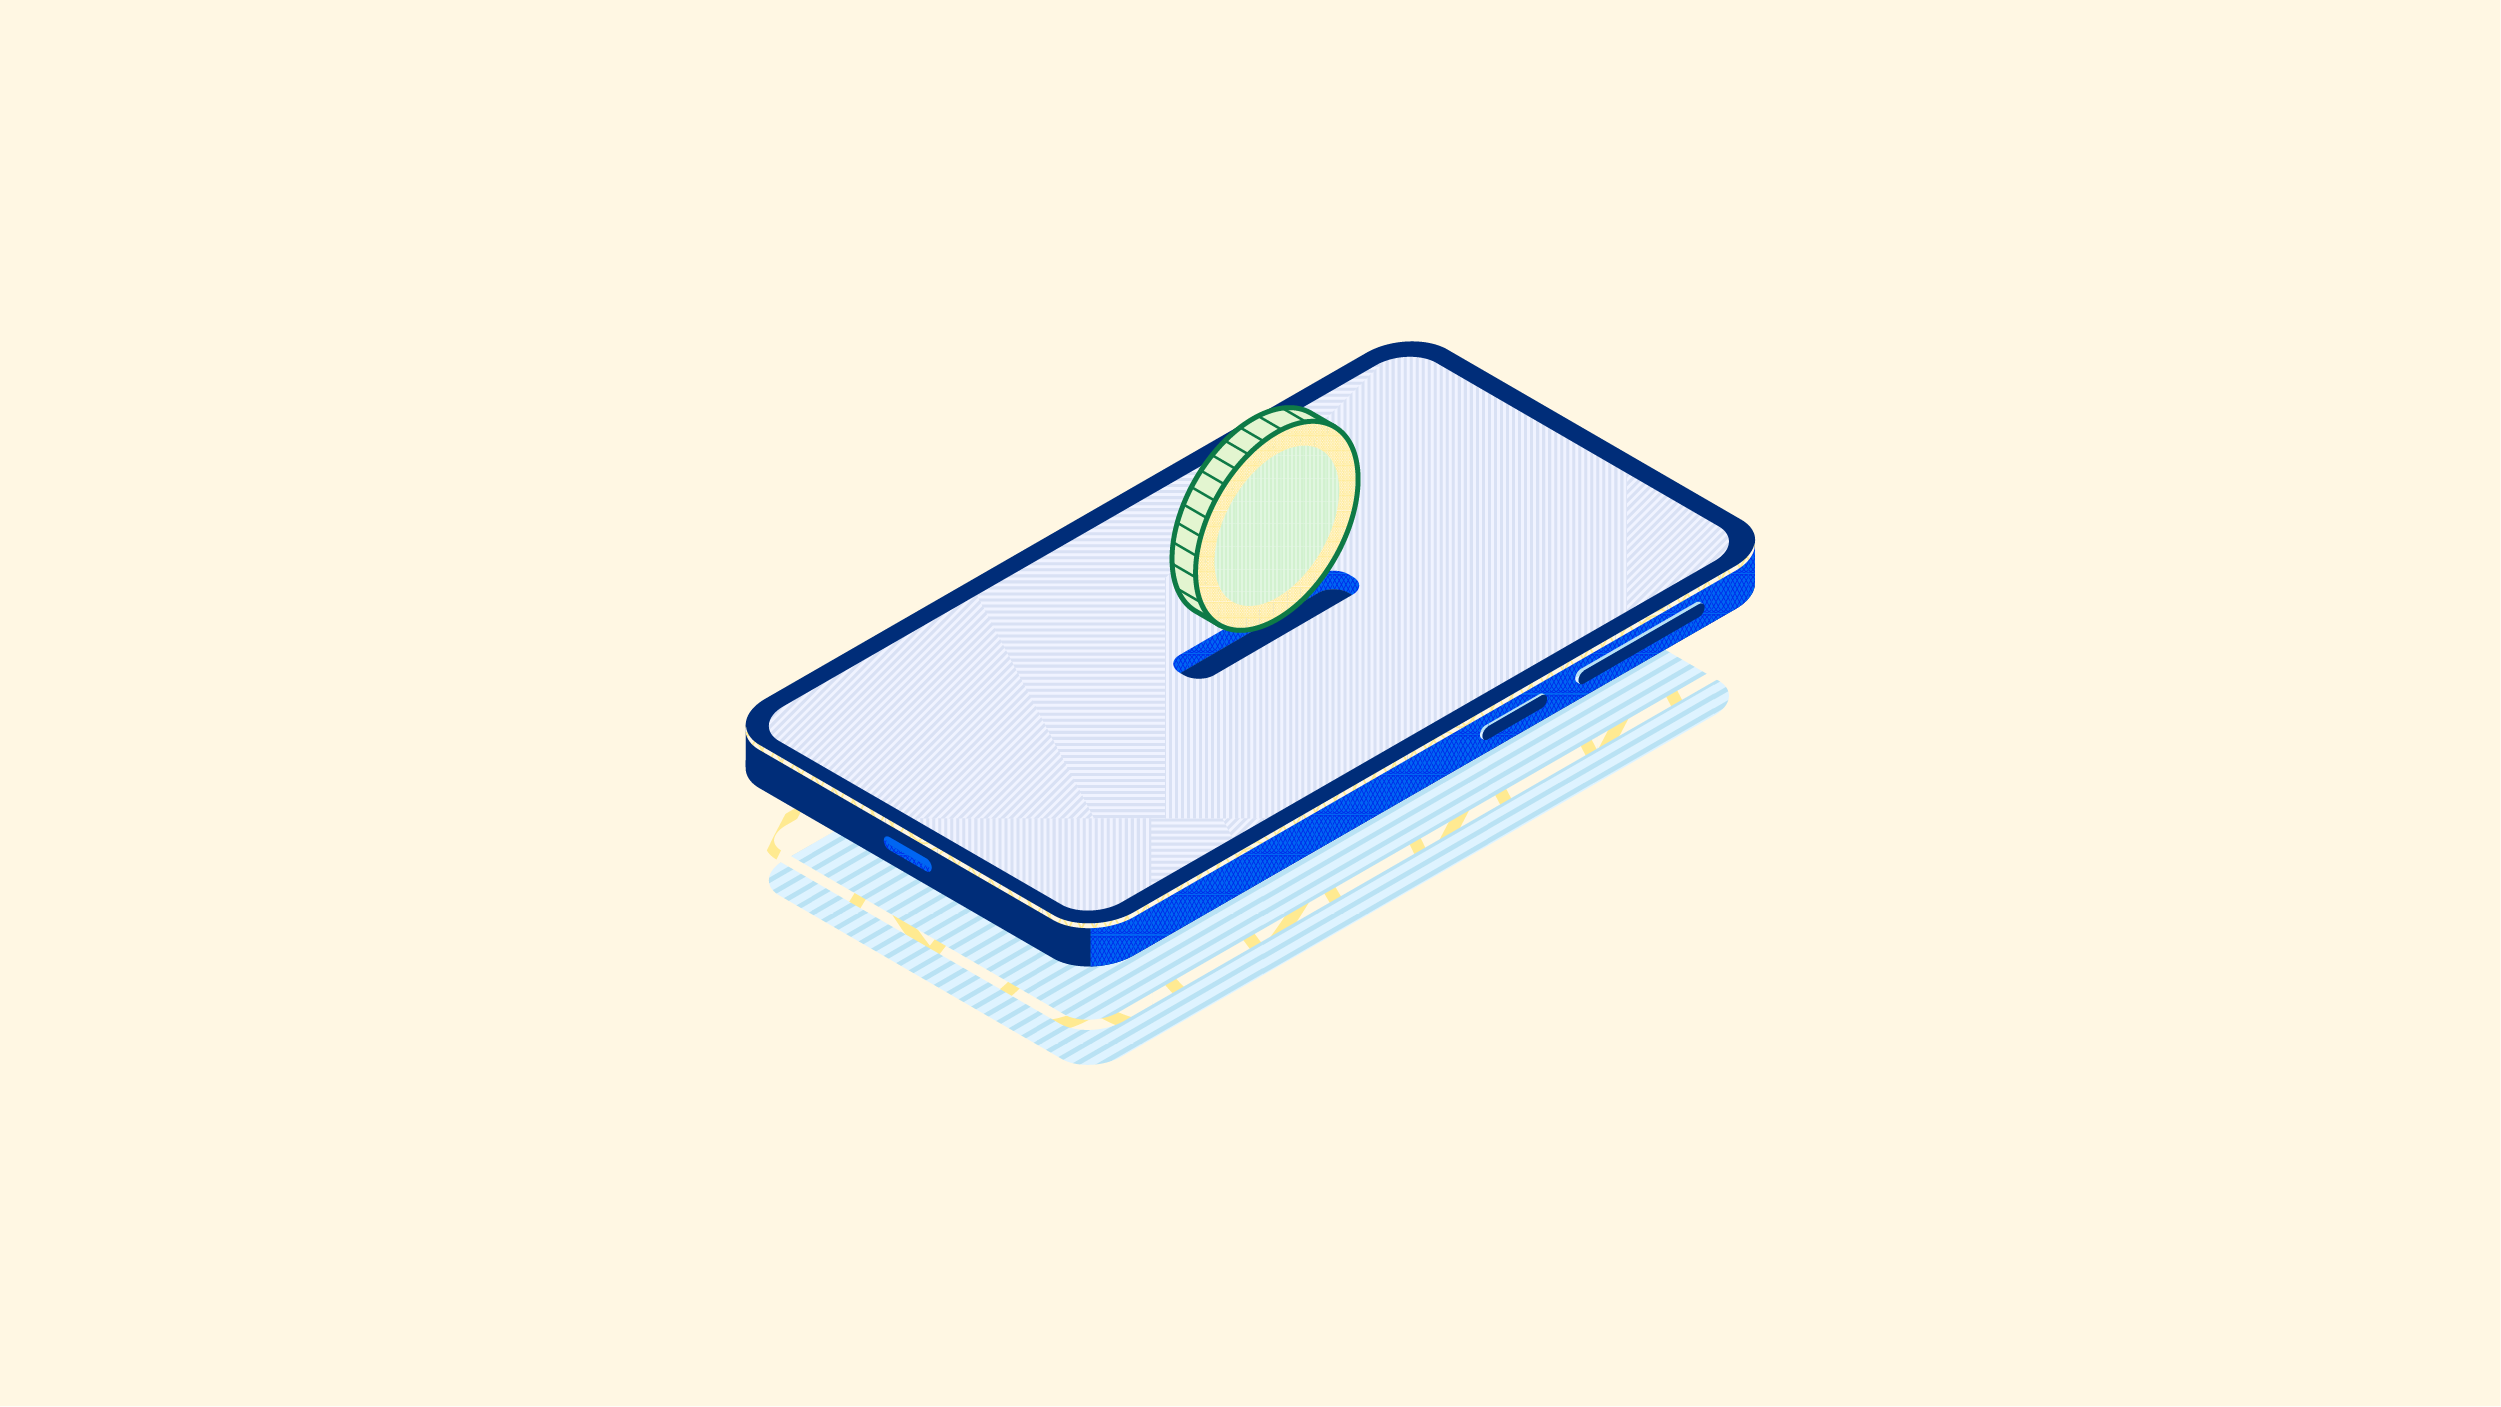 An illustration of a coin saved online